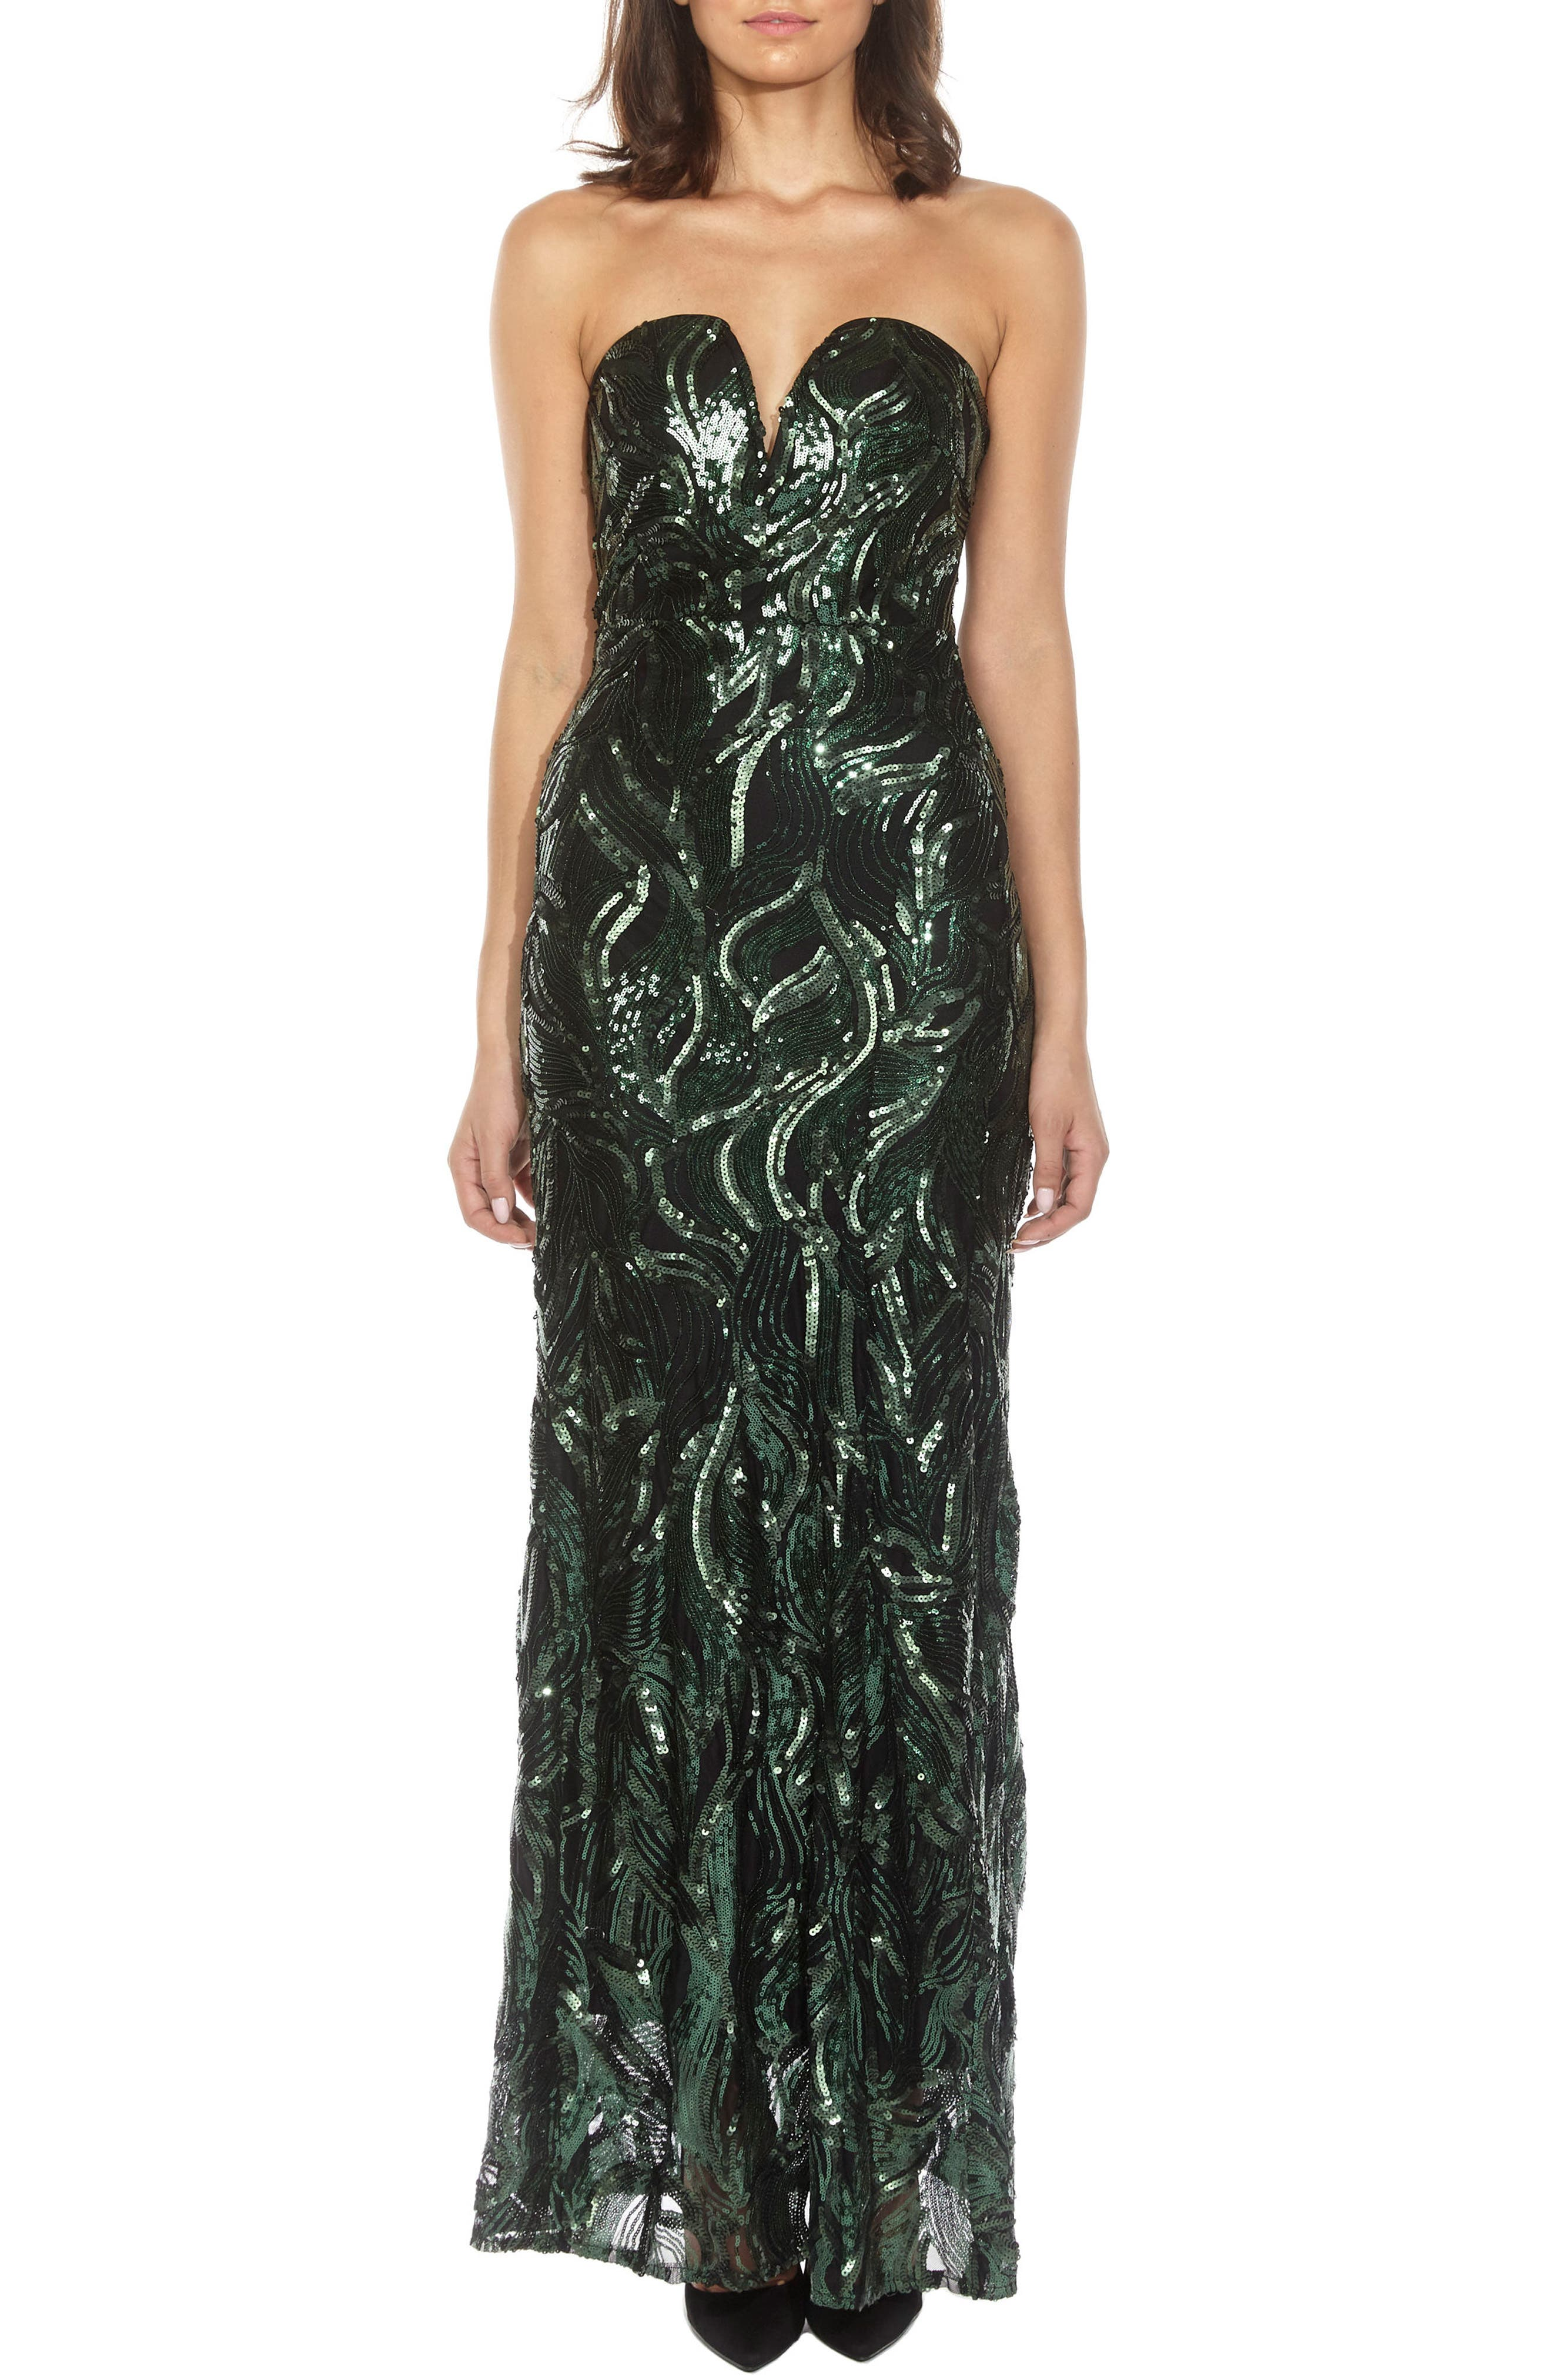 Gaynor Sequin Strapless Maxi Dress,                         Main,                         color, 310